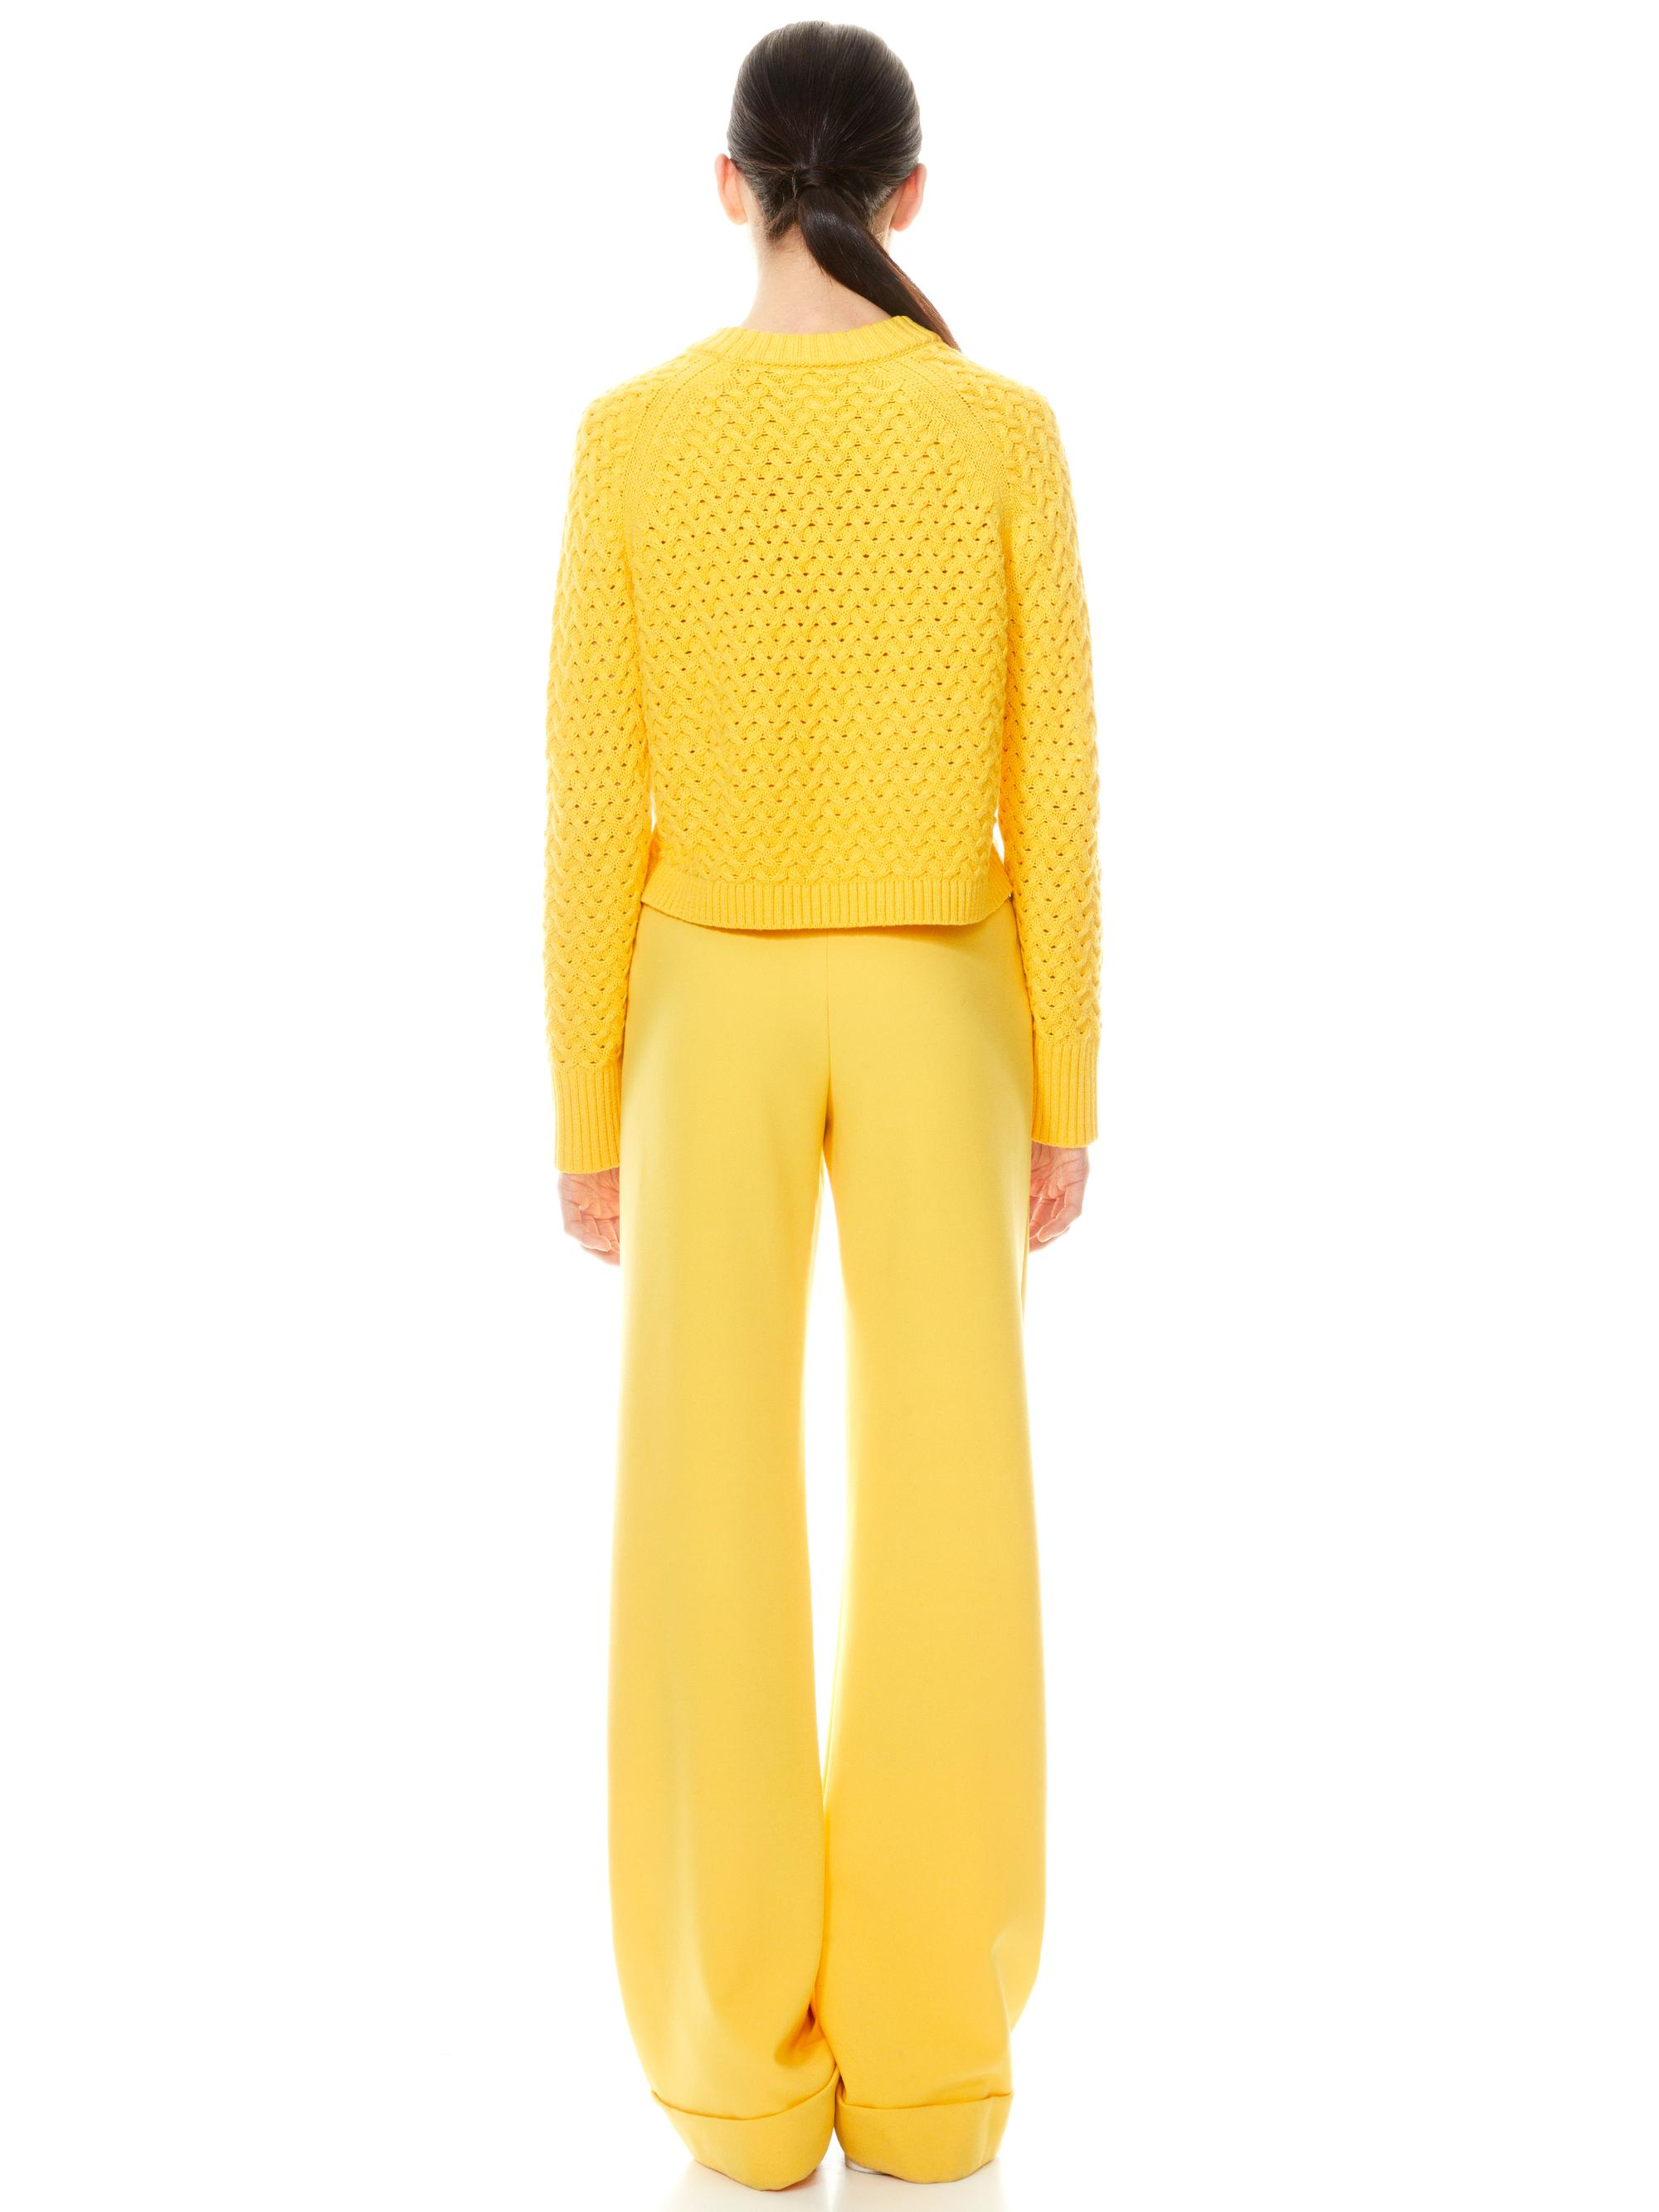 LETA CROPPED PULLOVER 1